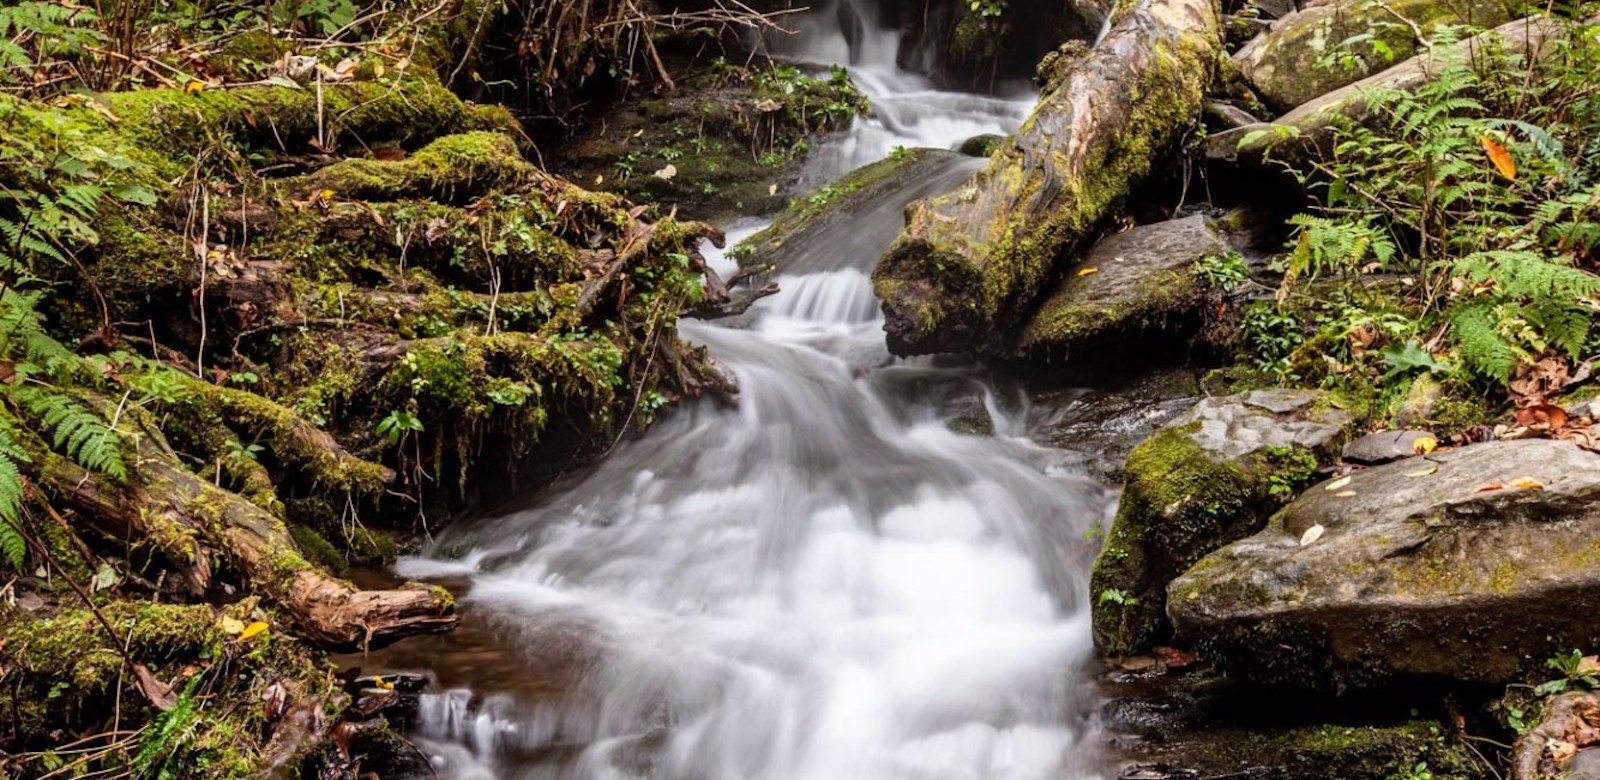 Roaring Fork Motor Nature Trail, Great Smoky Mountains National Park, North Carolina/Tennessee | Photo Credit: Vezzani Photography